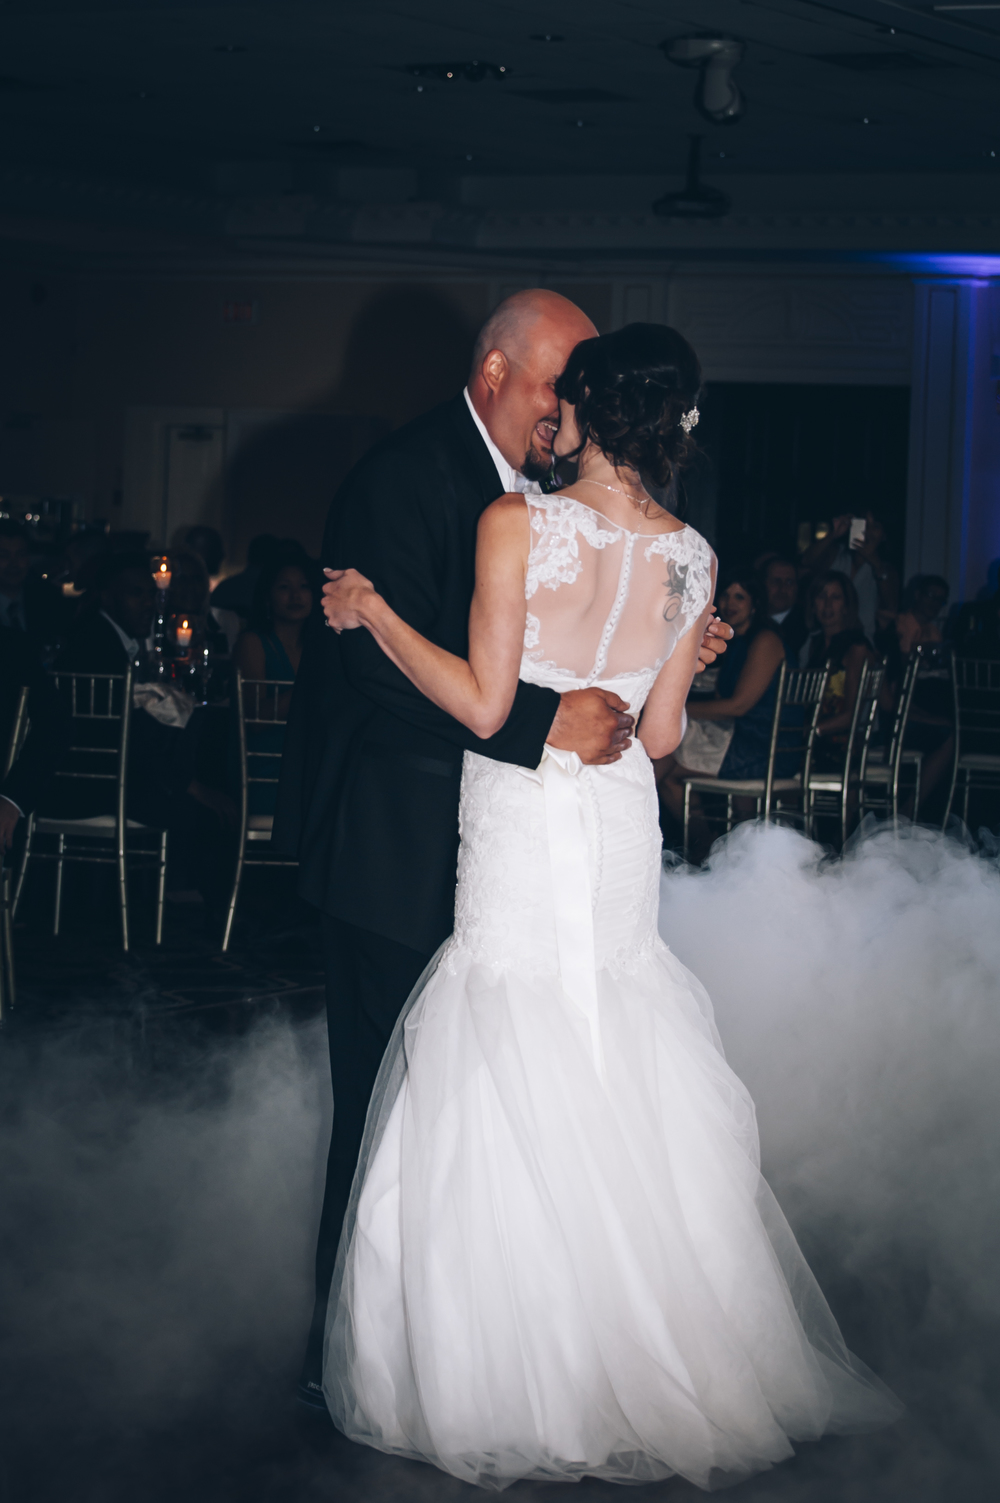 wedding, lifestyle, burlington wedding photographer,love,first dance